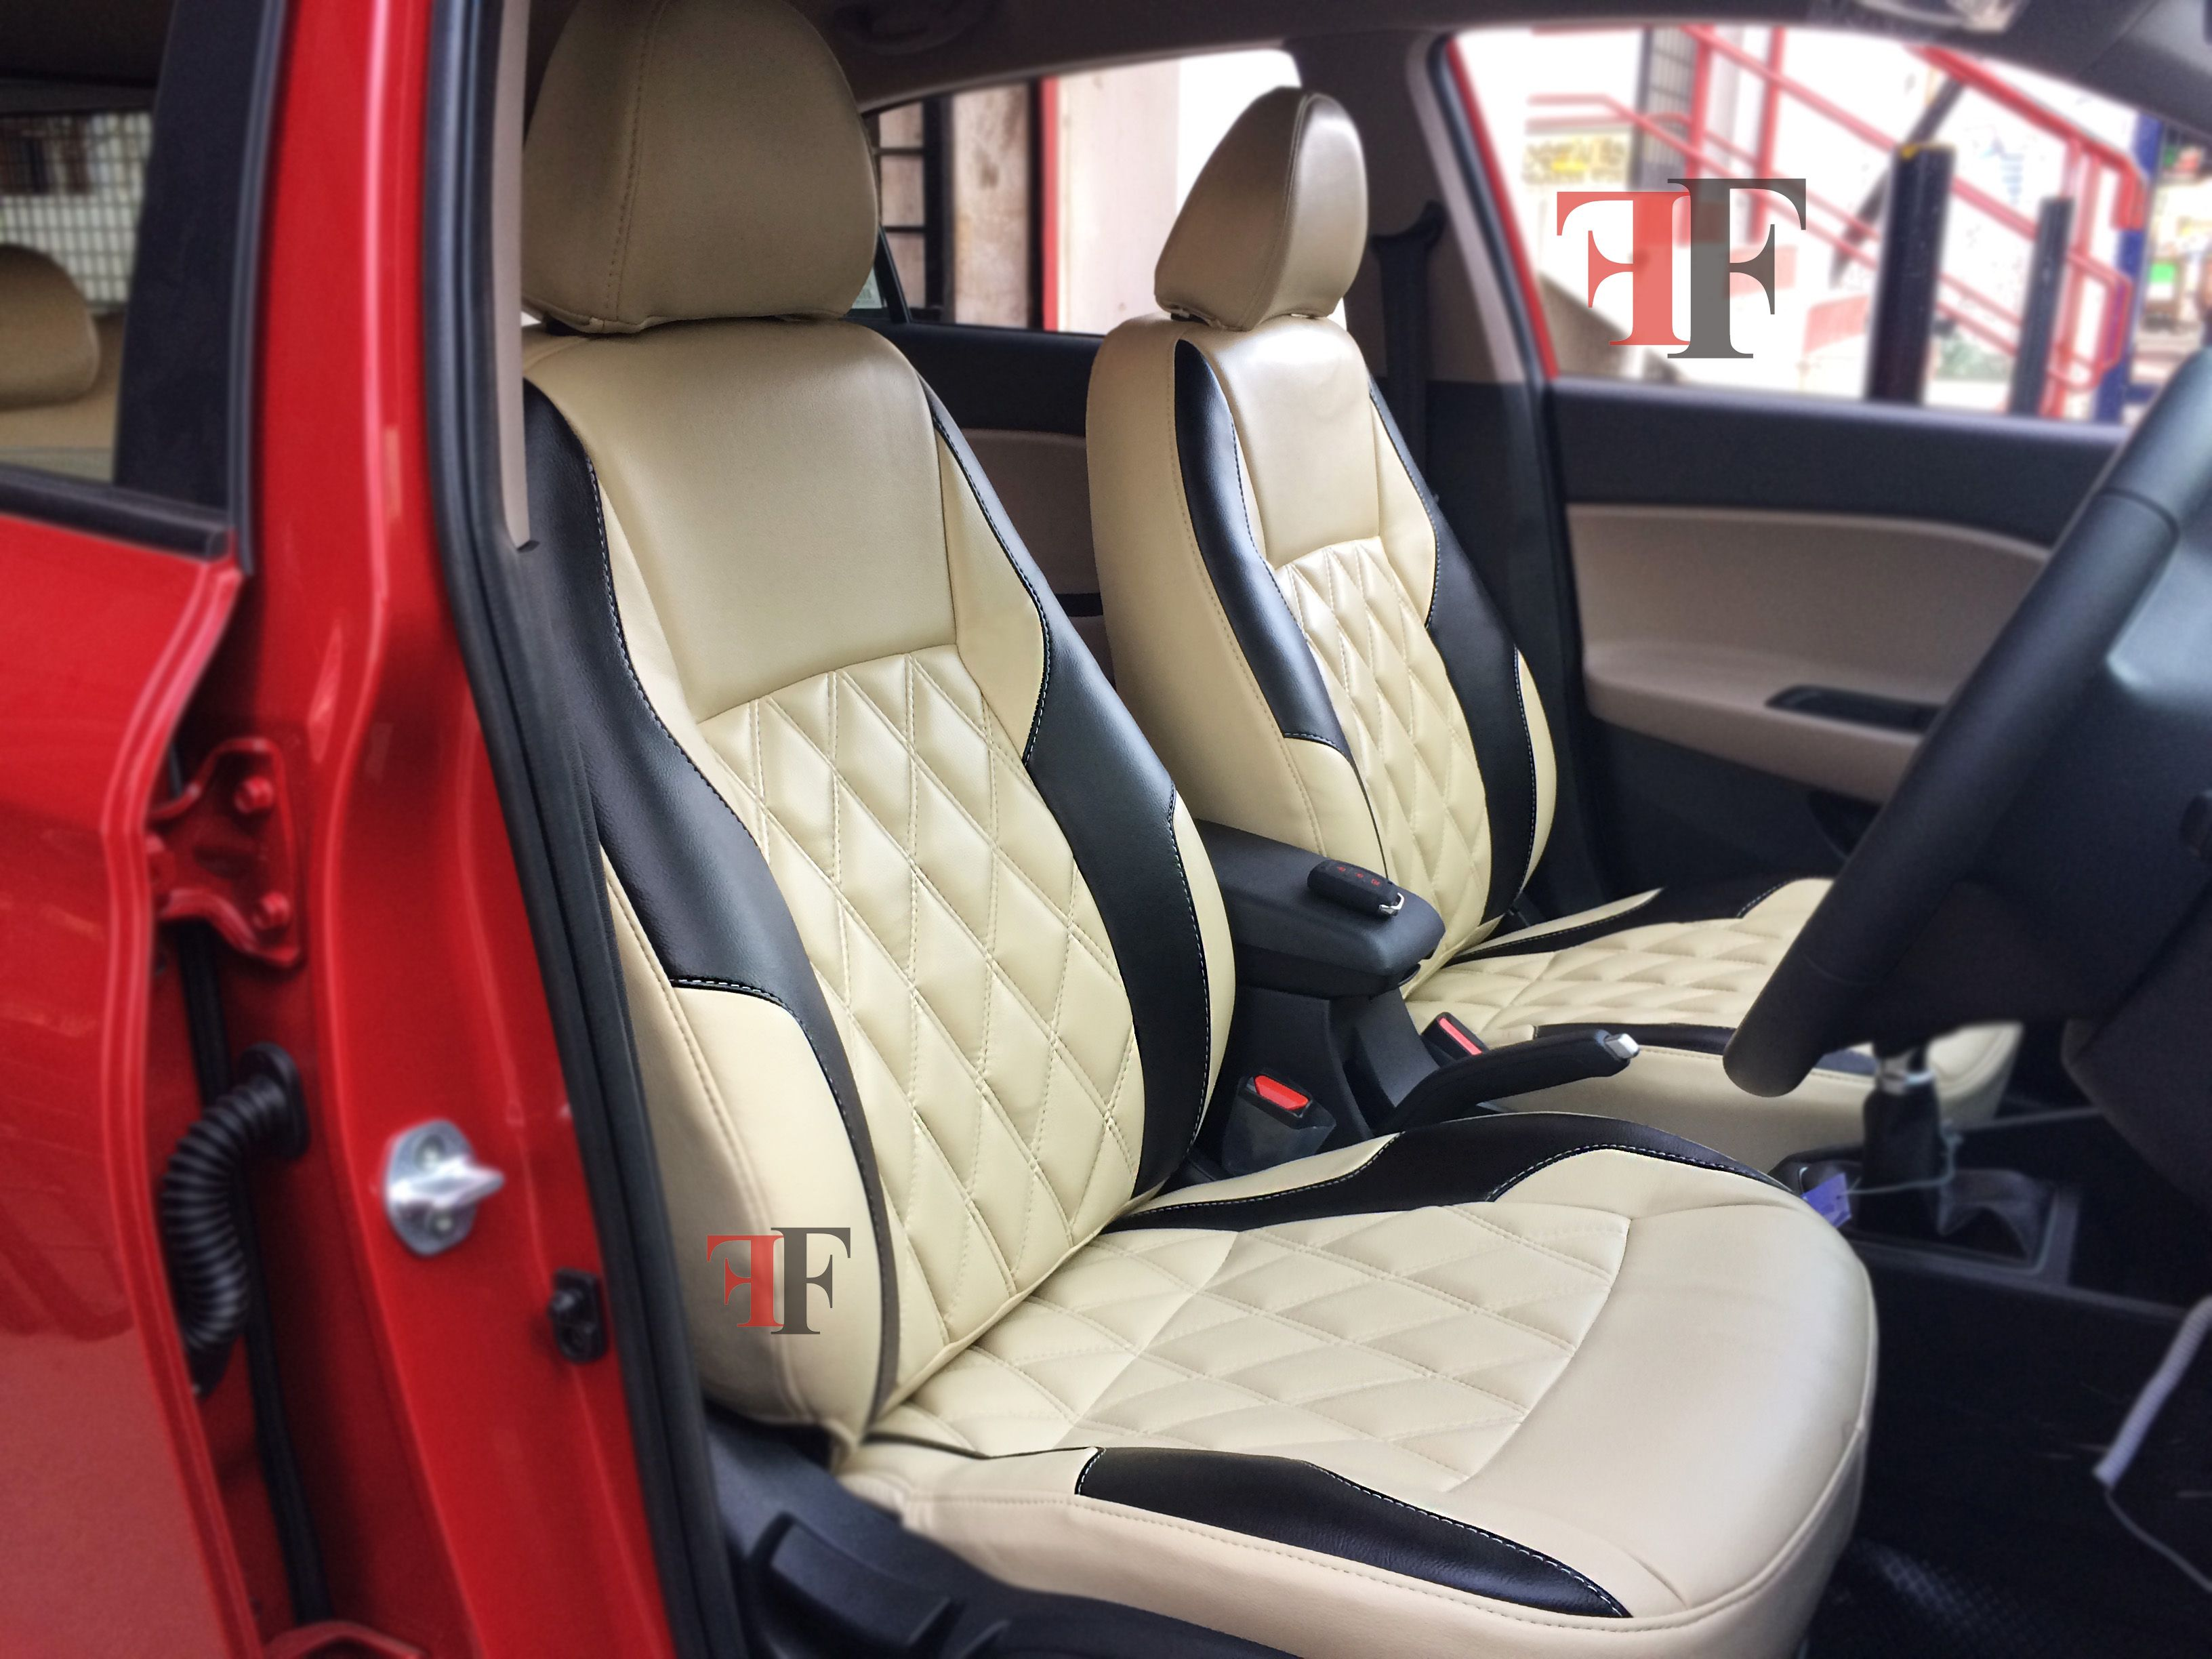 Hyundai Elite I20 Car Seat Covers From Ff Car Accessories Chennai Car Seats Car Accessories Carseat Cover